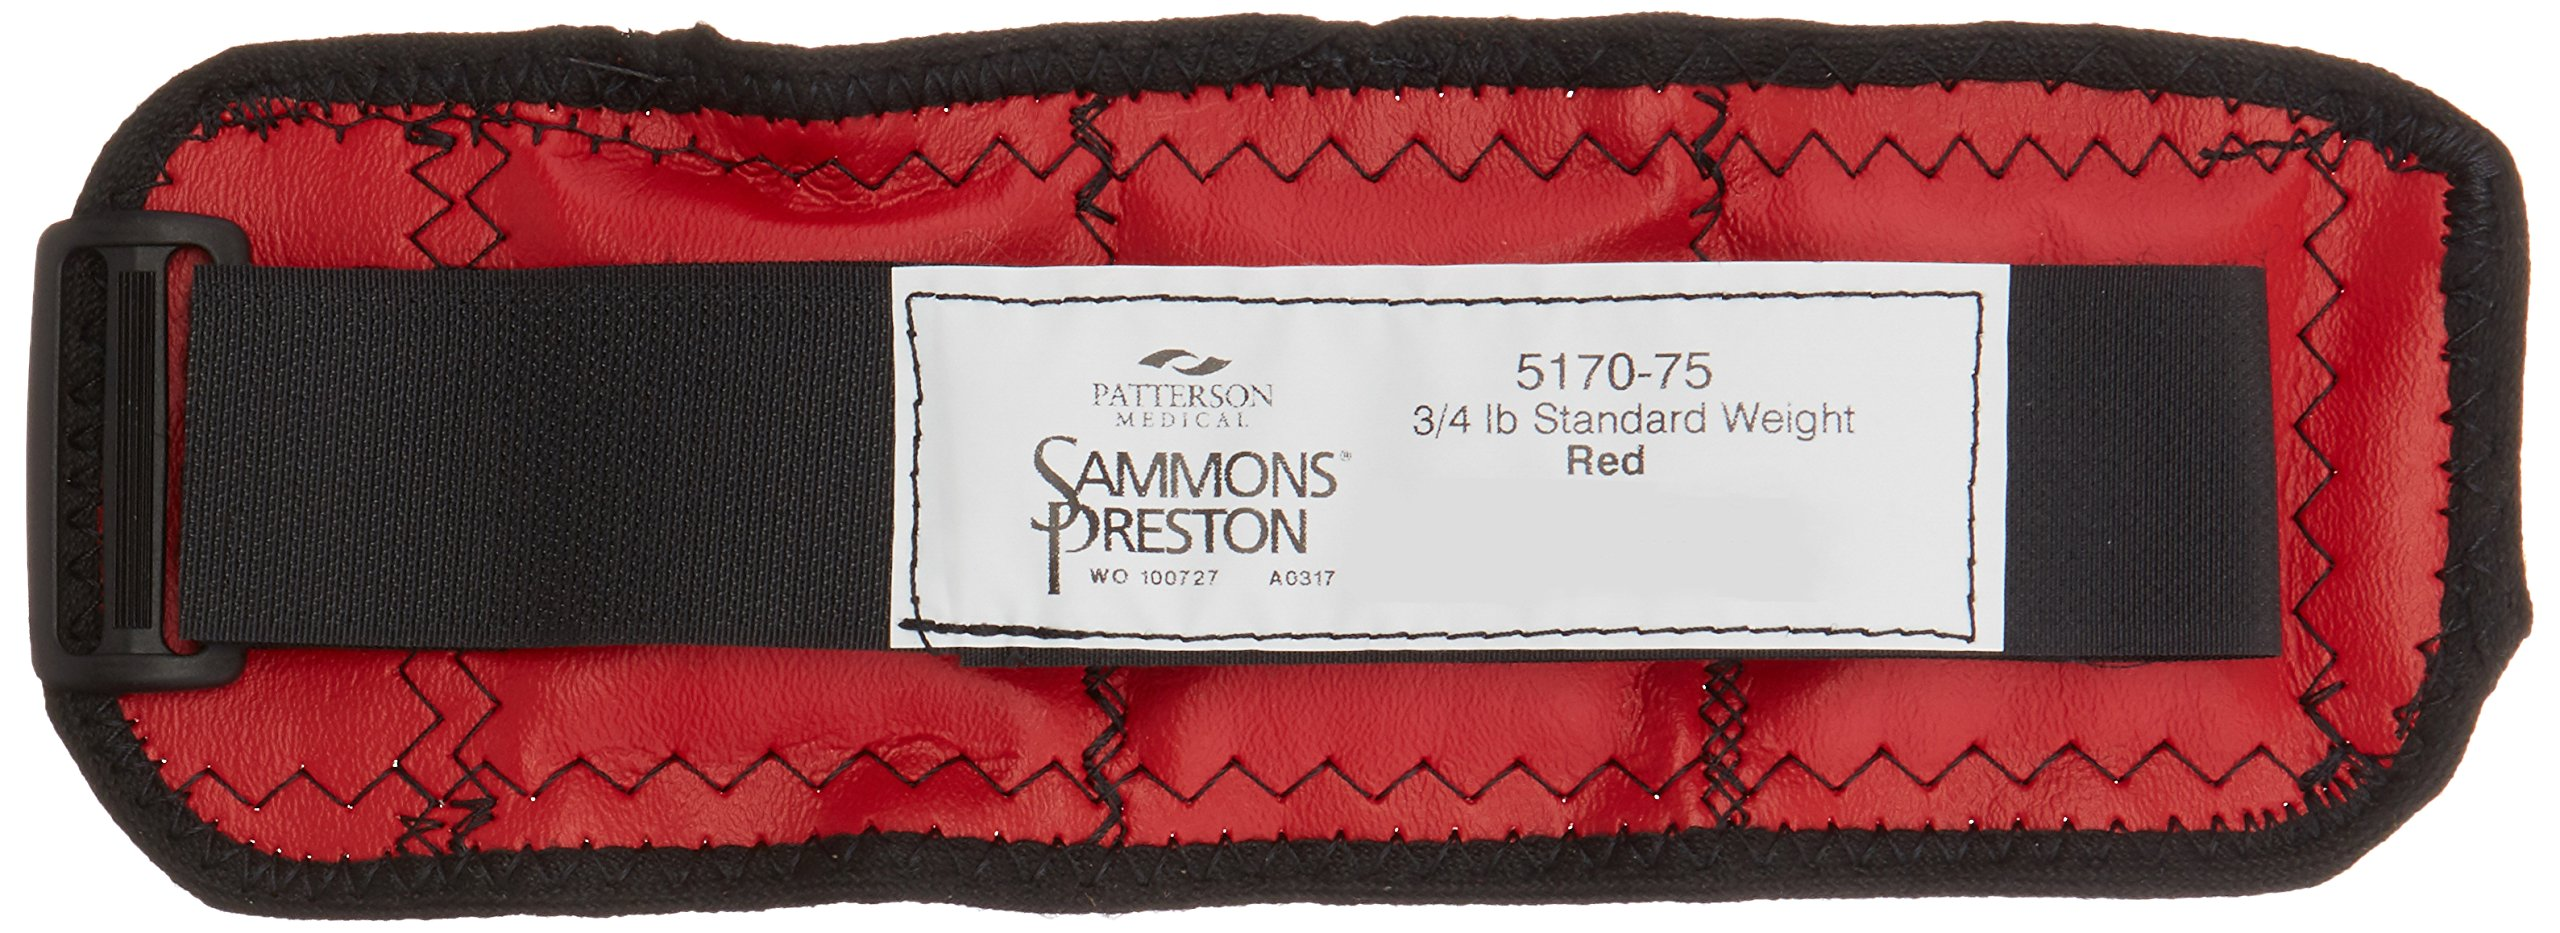 Sammons Preston Cuff Weight, 0.75 lb, Red, Velcro Strap with D-Ring Closure, Grommet for Easy Hanging, Steel Ankle & Wrist Weights are Lead Free, Exercise Tool for Strength Building & Injury Rehab by Sammons Preston (Image #2)